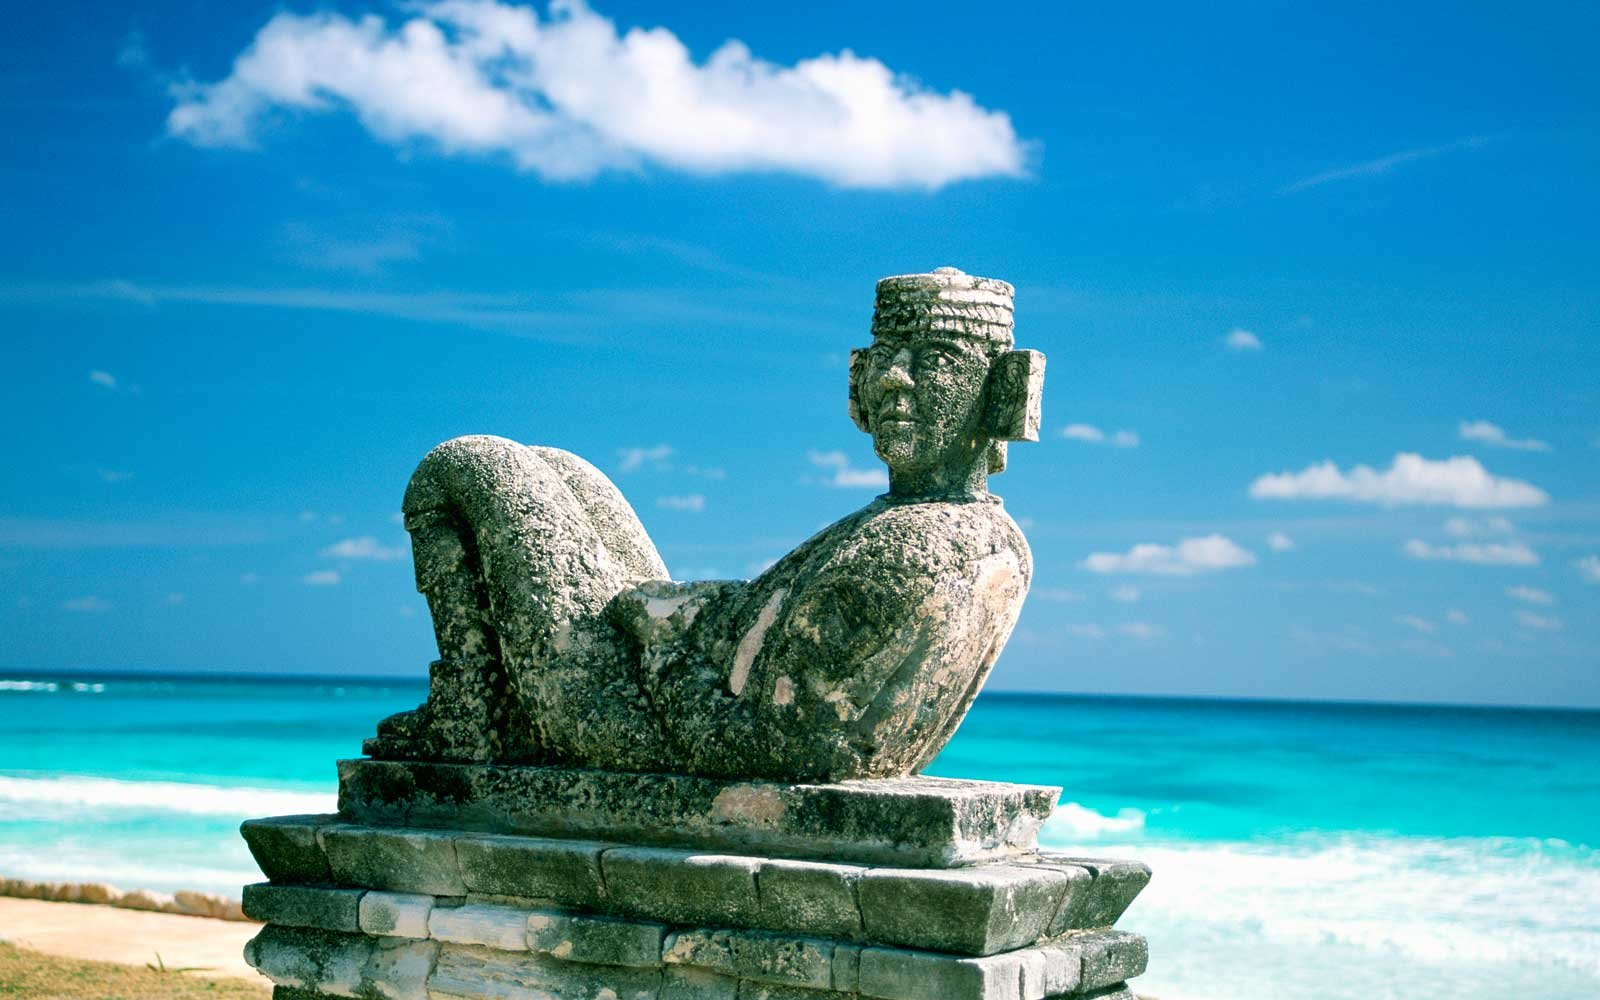 Statue on the beach at Playa Chac Mool, Mexico